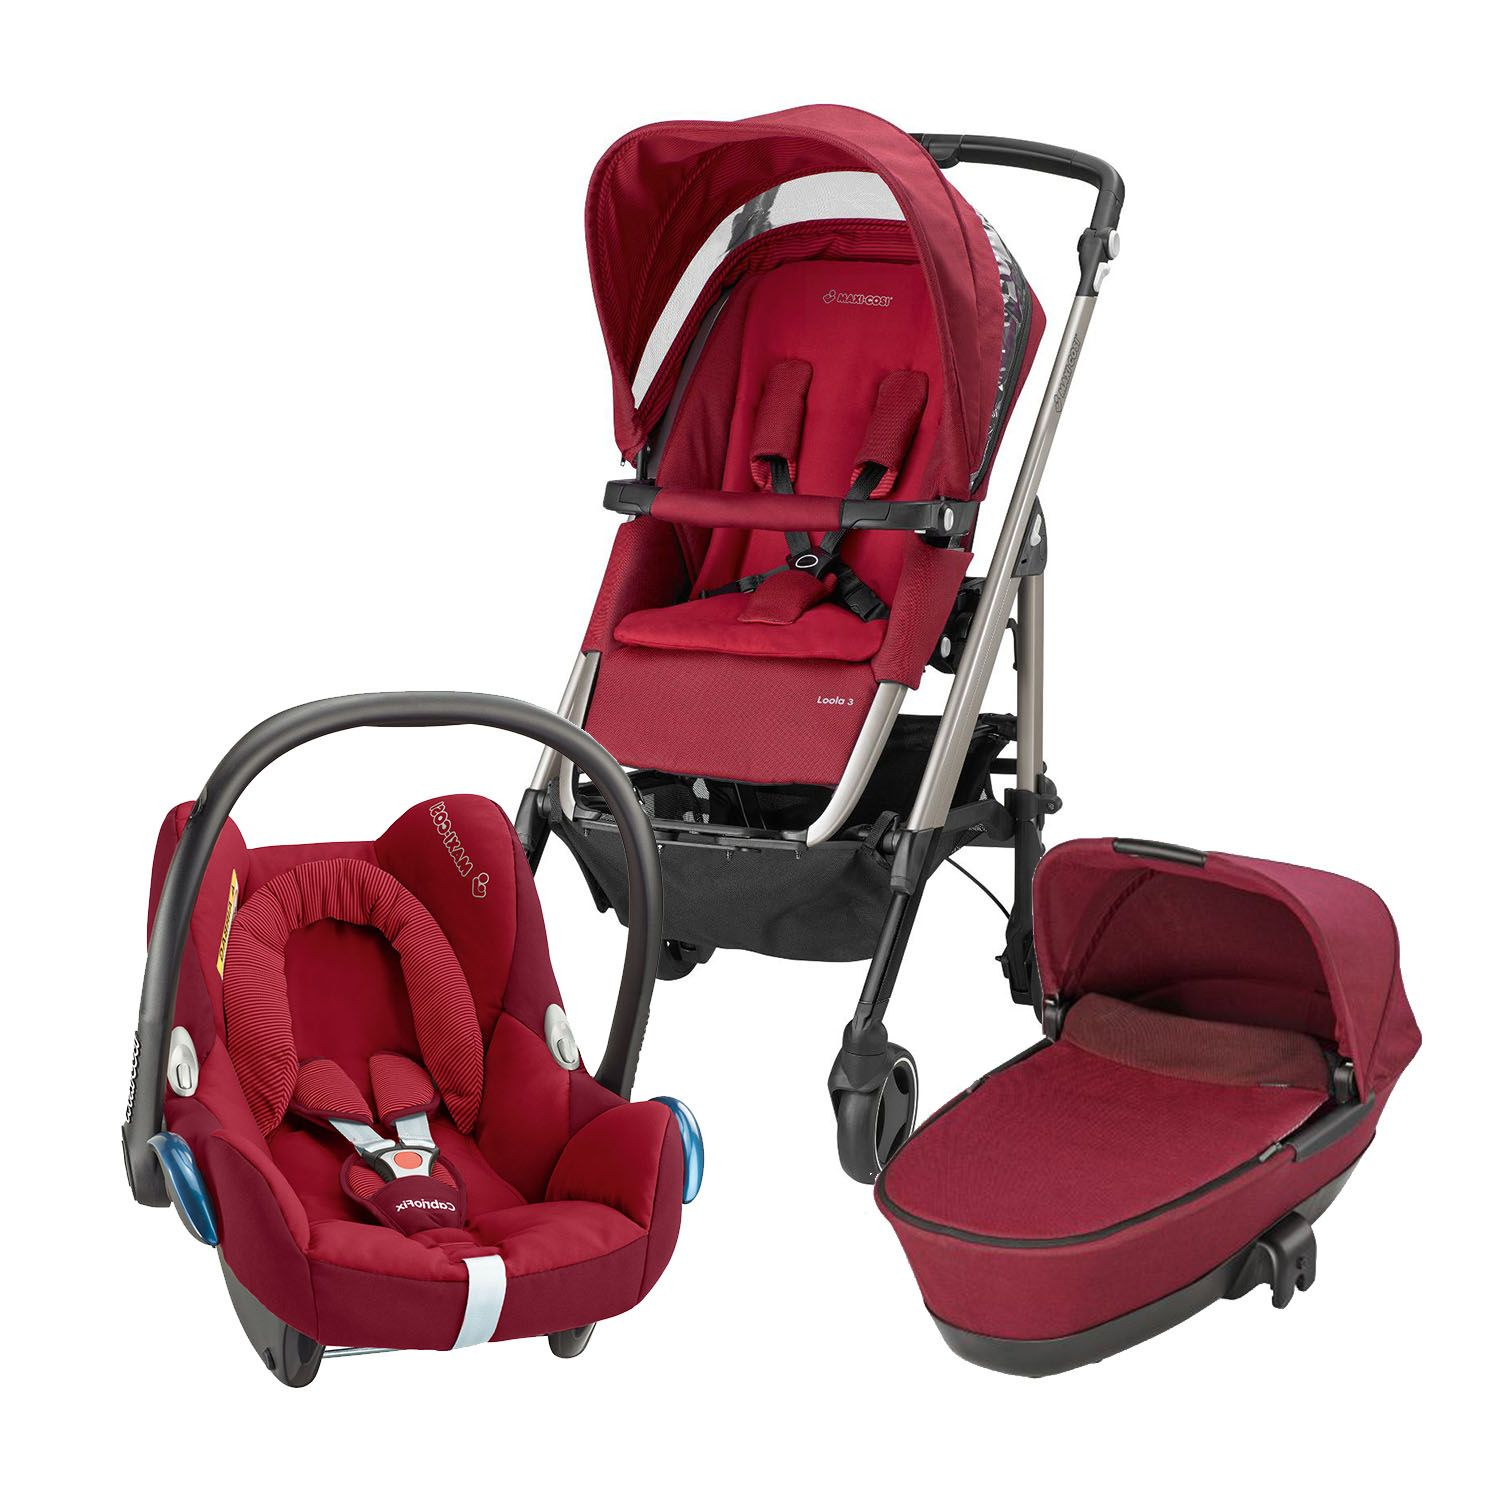 MaxiCosi Loola Pushchair Carrycot and Cabriofix Car Seat